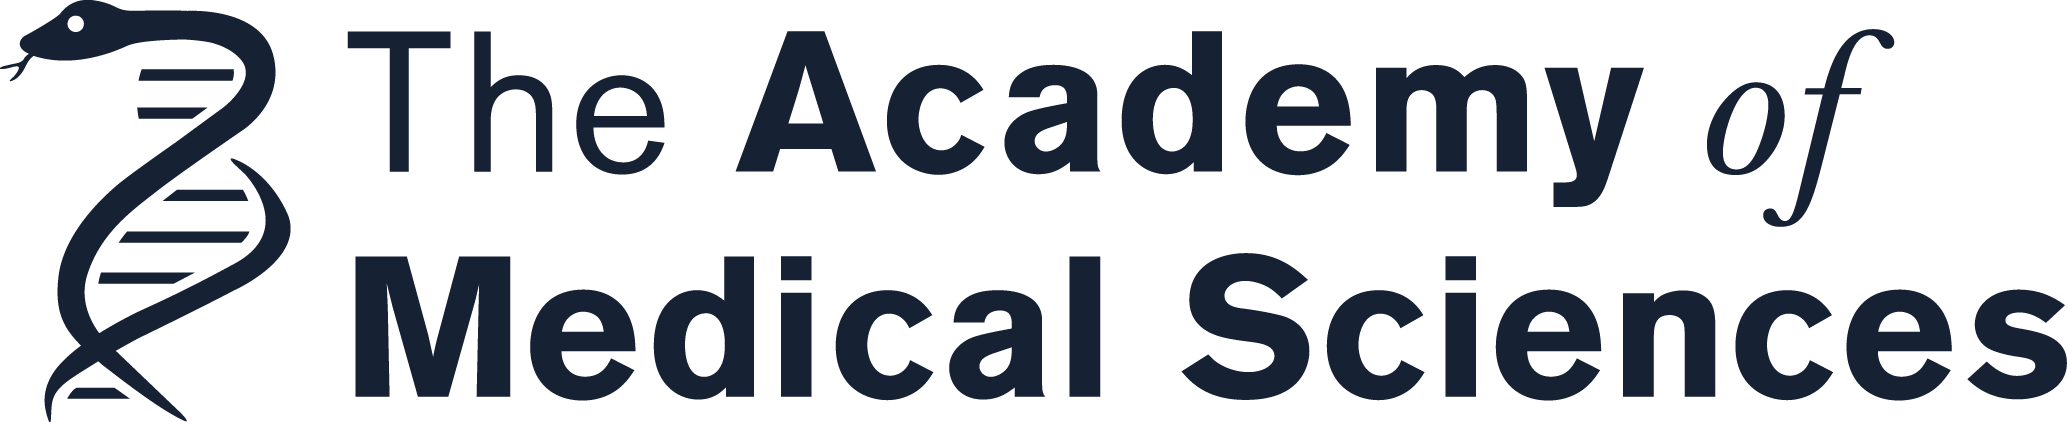 The Academy of Medical